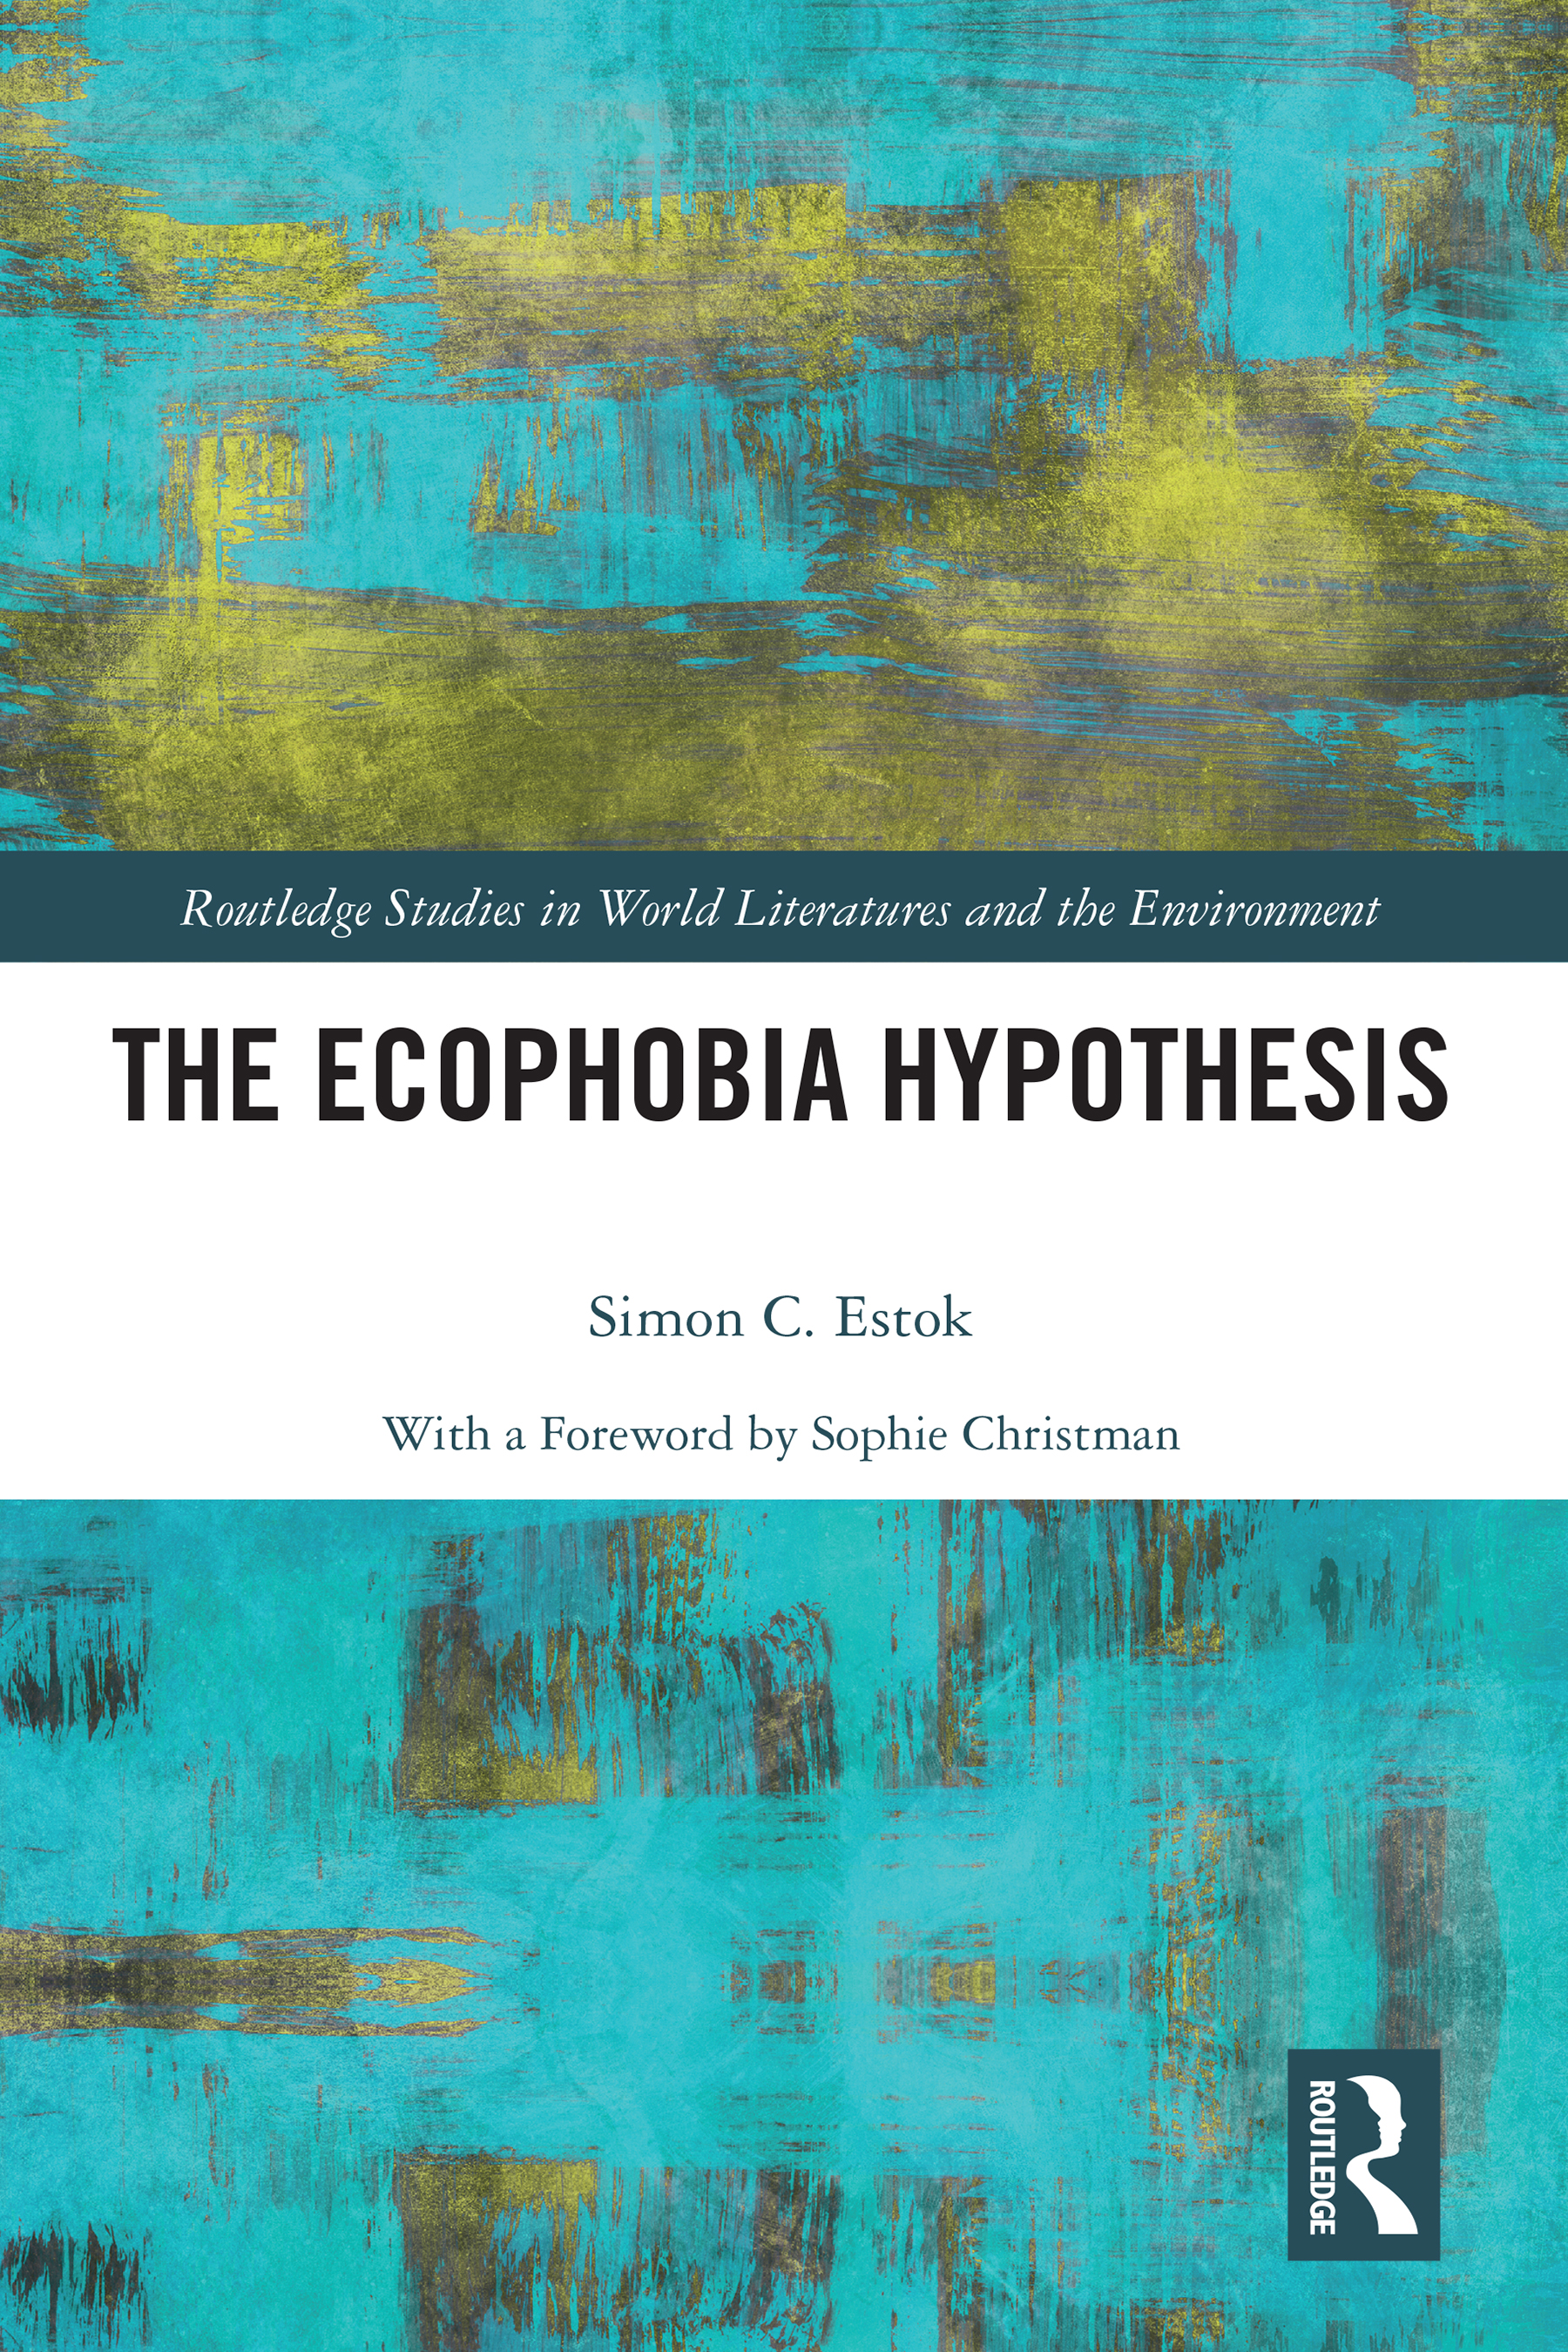 The Ecophobia Hypothesis